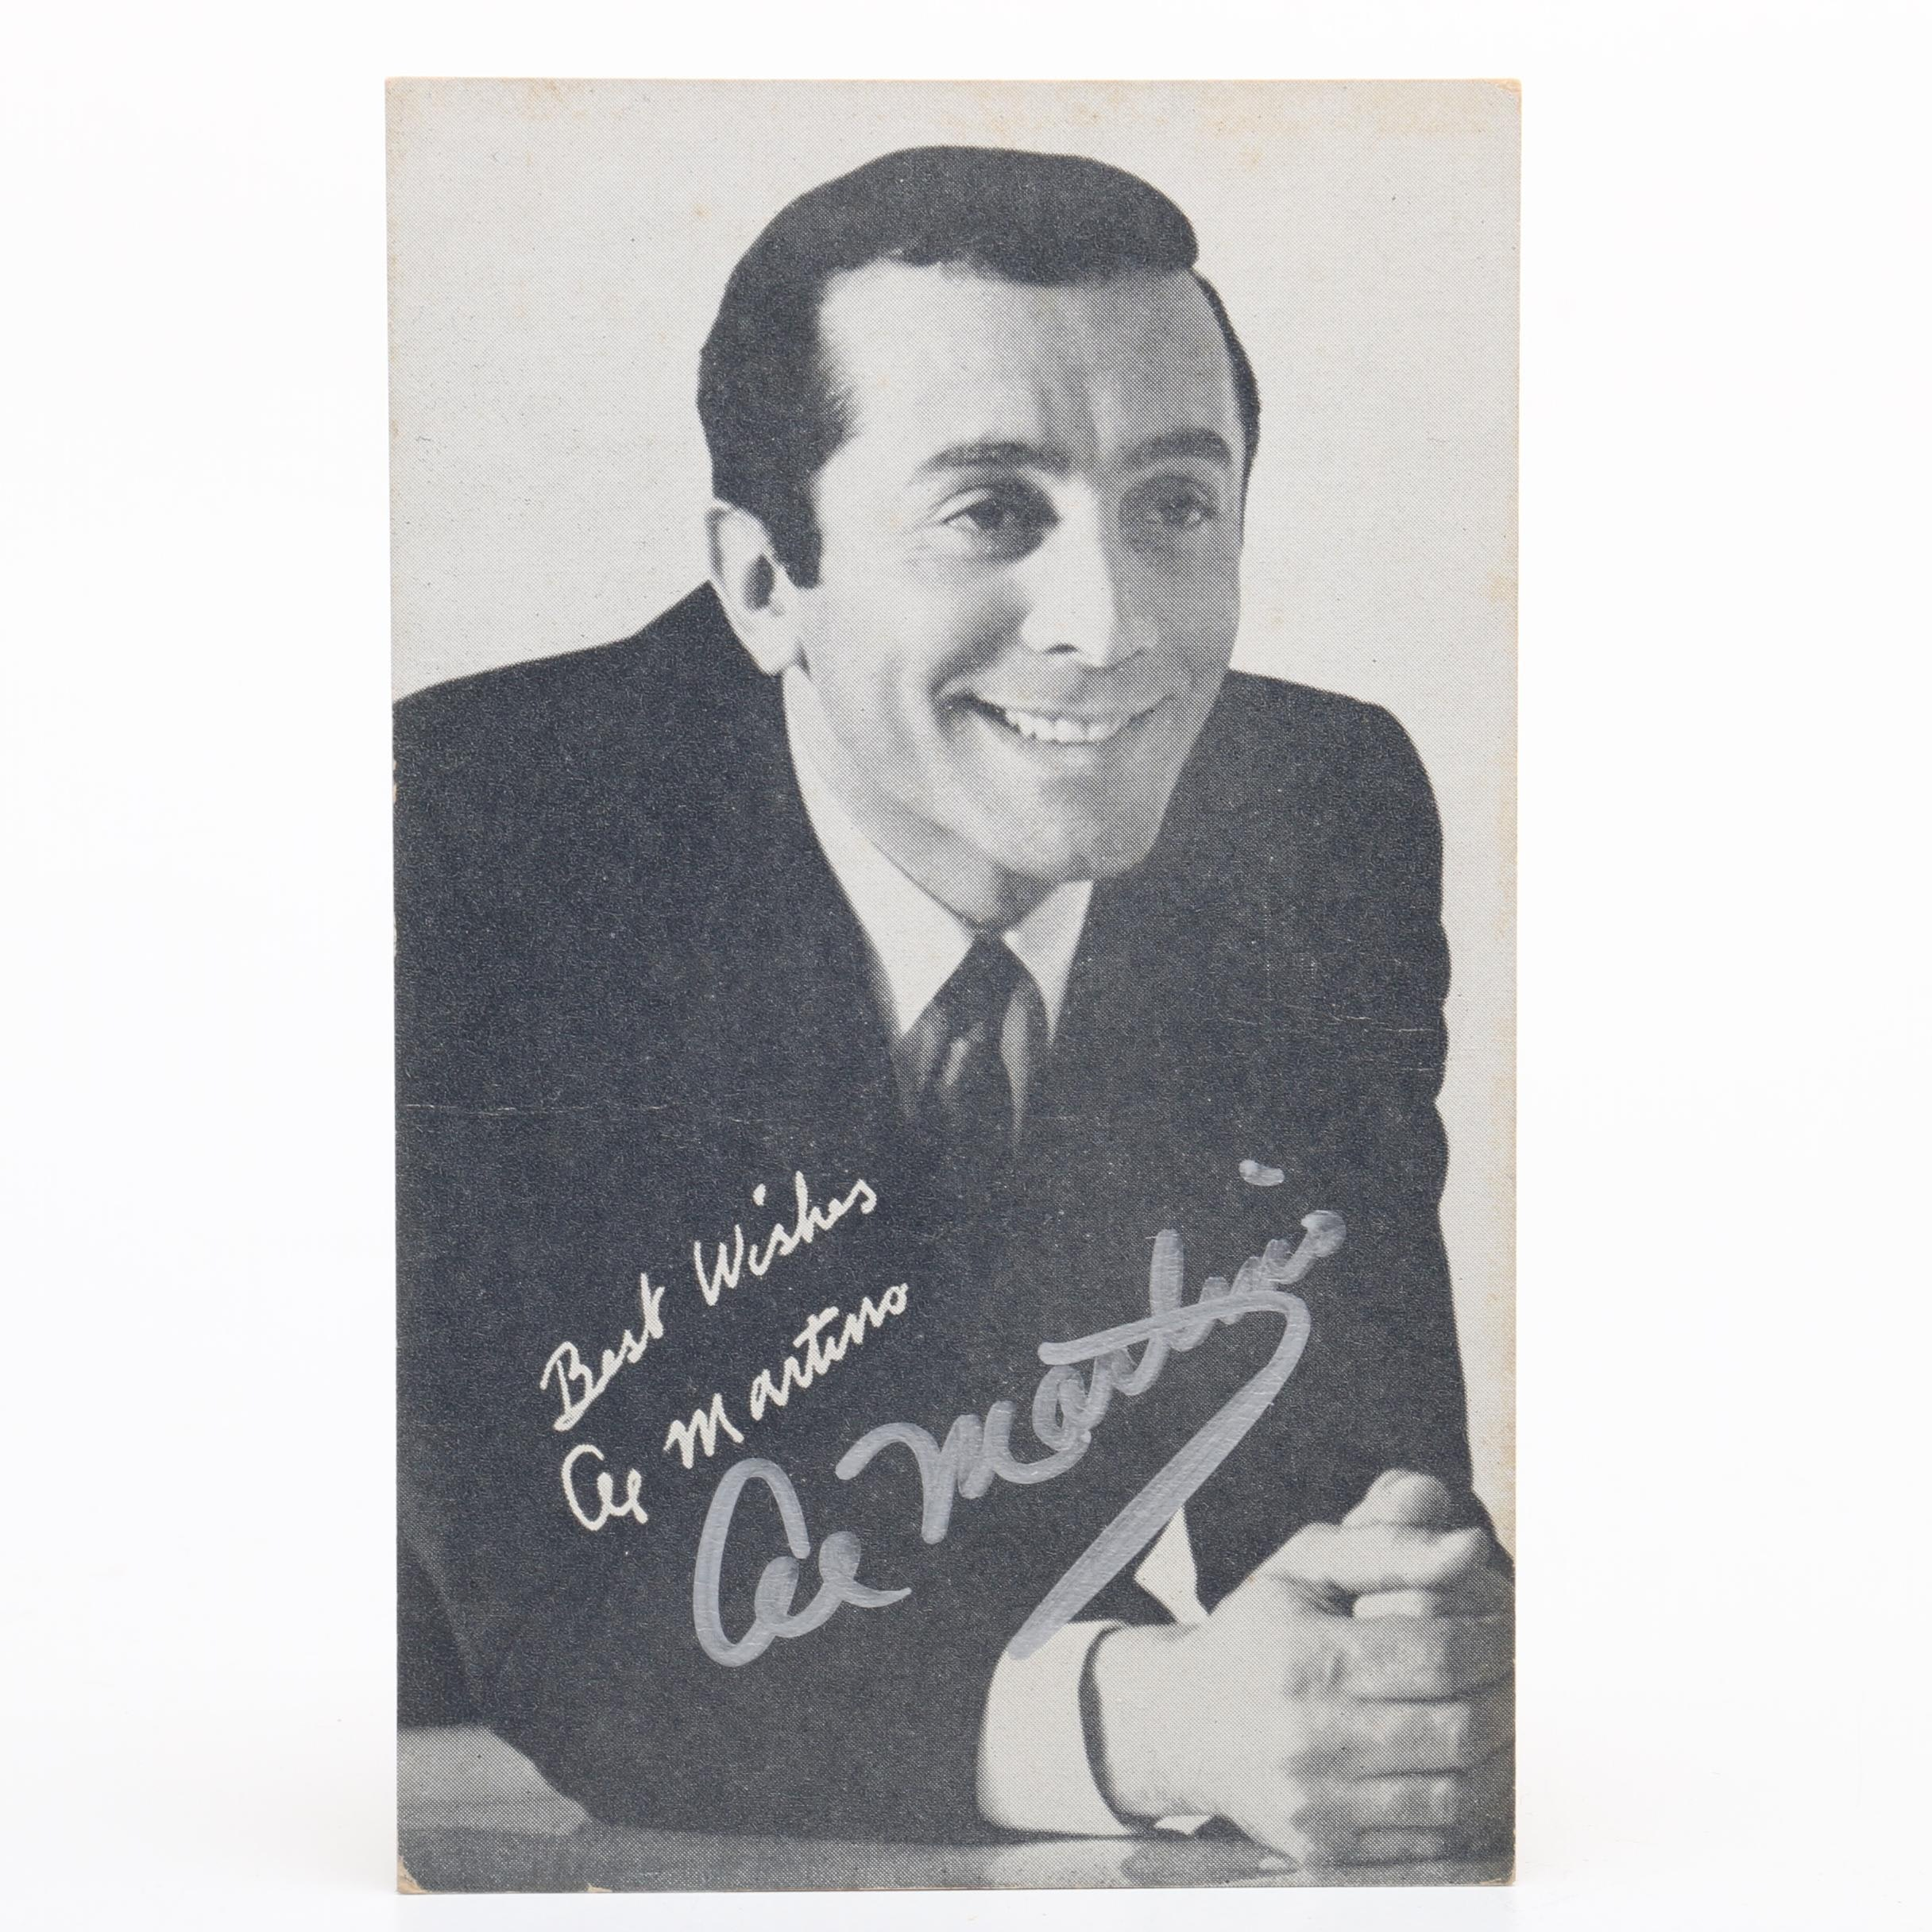 Al Martino Signed Promotional Card